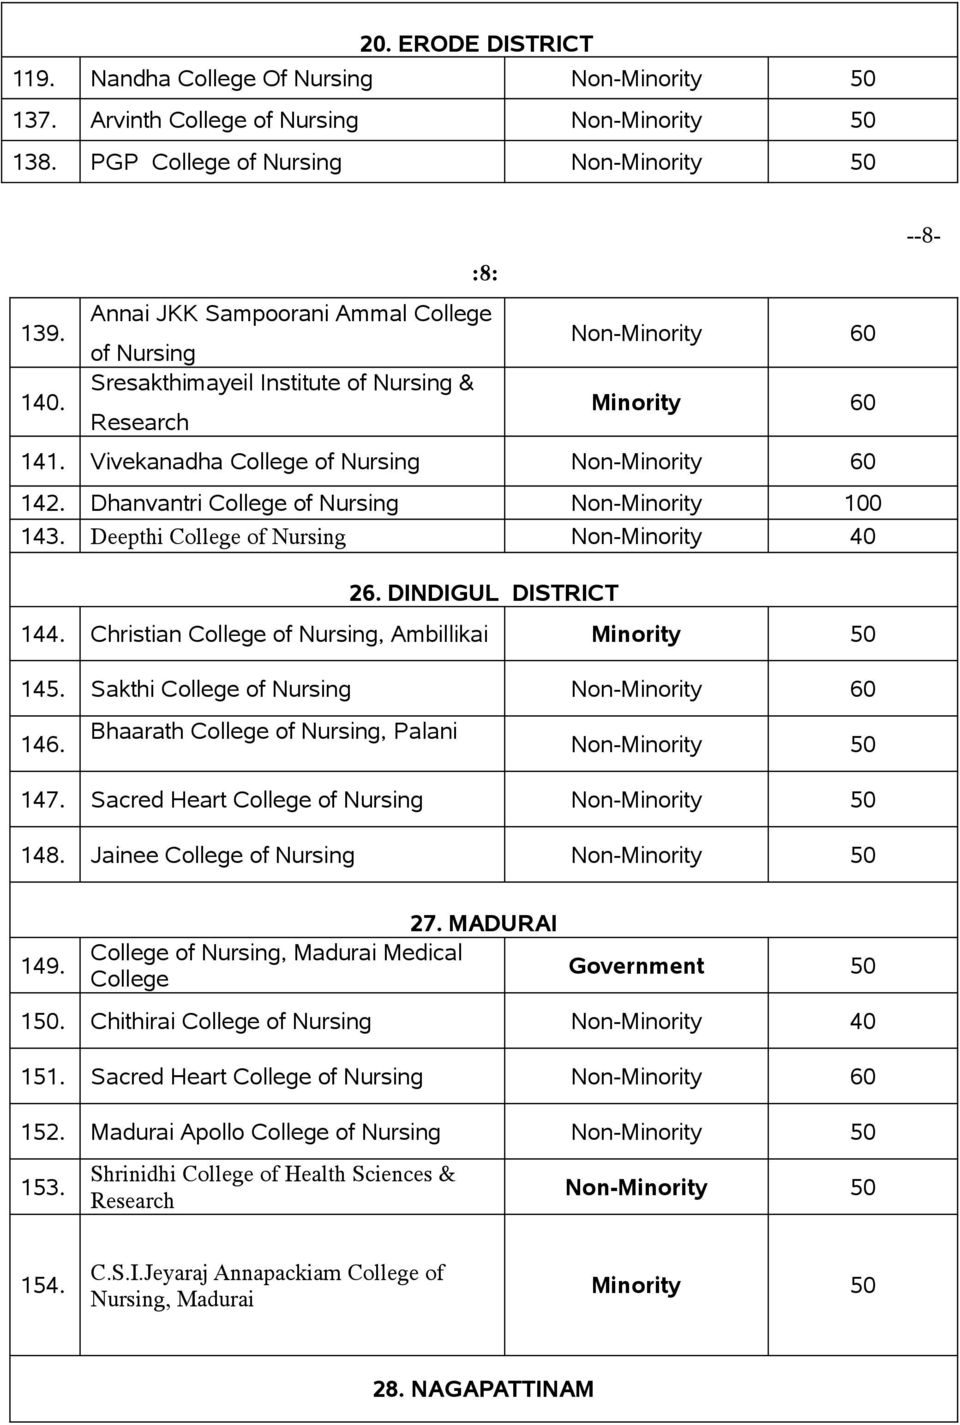 Christian College of Nursing, Ambillikai Minority 145. Sakthi College of Nursing 60 146. Bhaarath College of Nursing, Palani 147. Sacred Heart College of Nursing 148. Jainee College of Nursing 149.